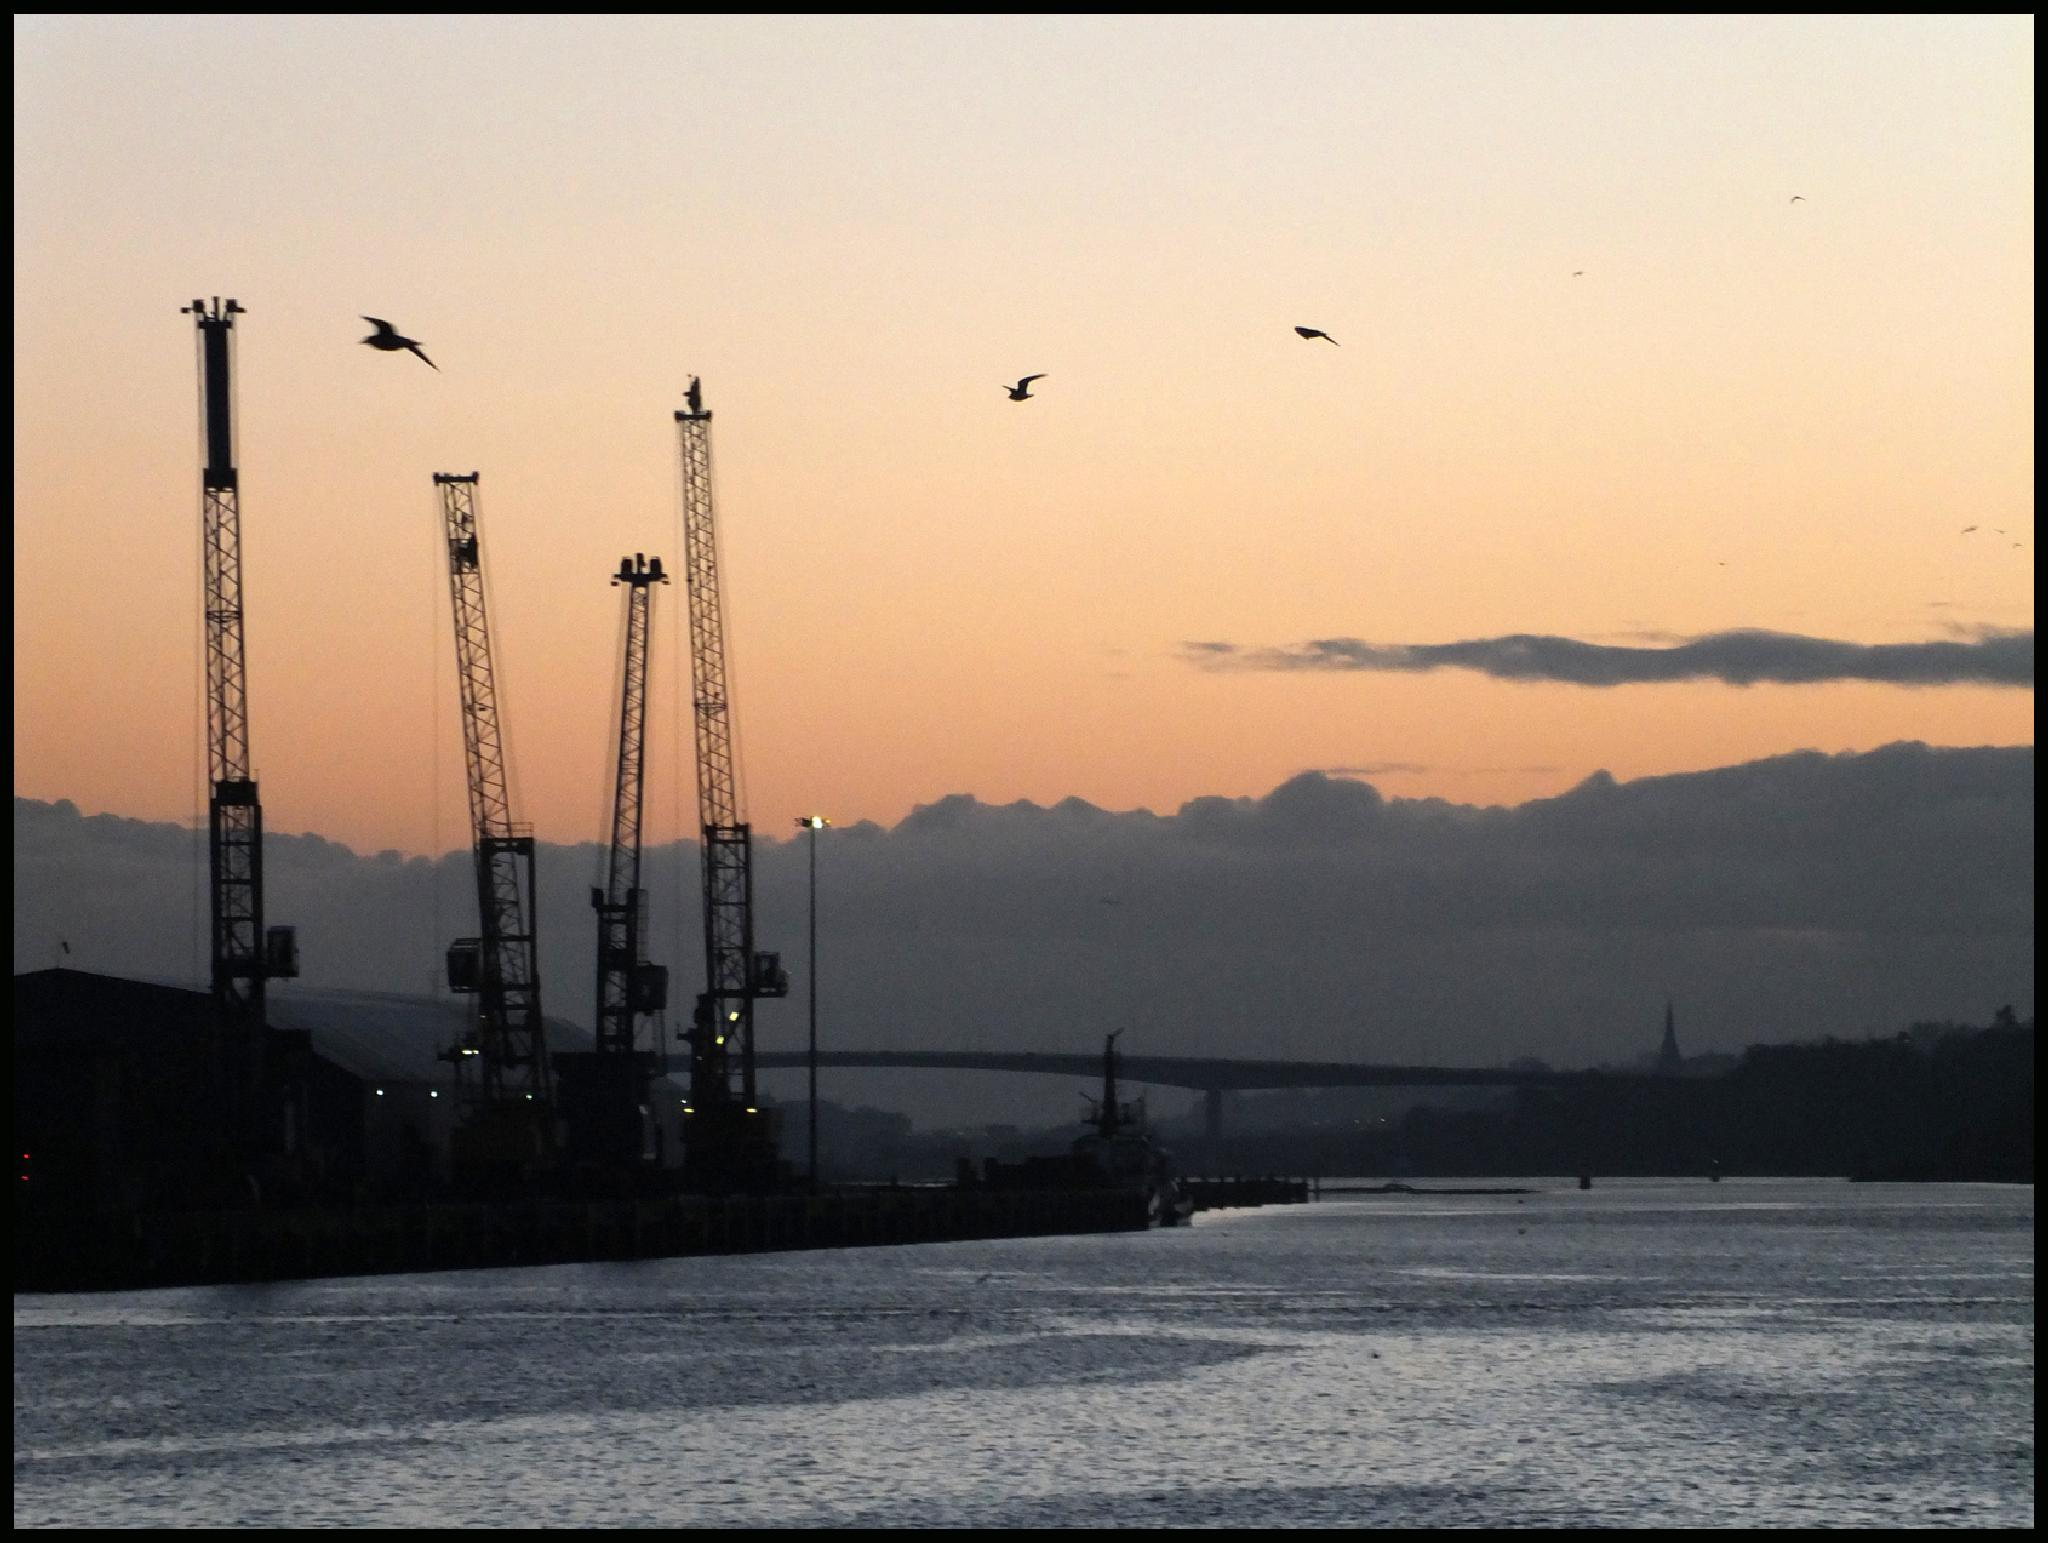 Photo in Sea and Sand #foyle #lough #sea #twilight #evening #cranes #port #derry #gulls #flight #ireland #ulster #donegal #cloud #bridge #spire #cityscape #industry #coal